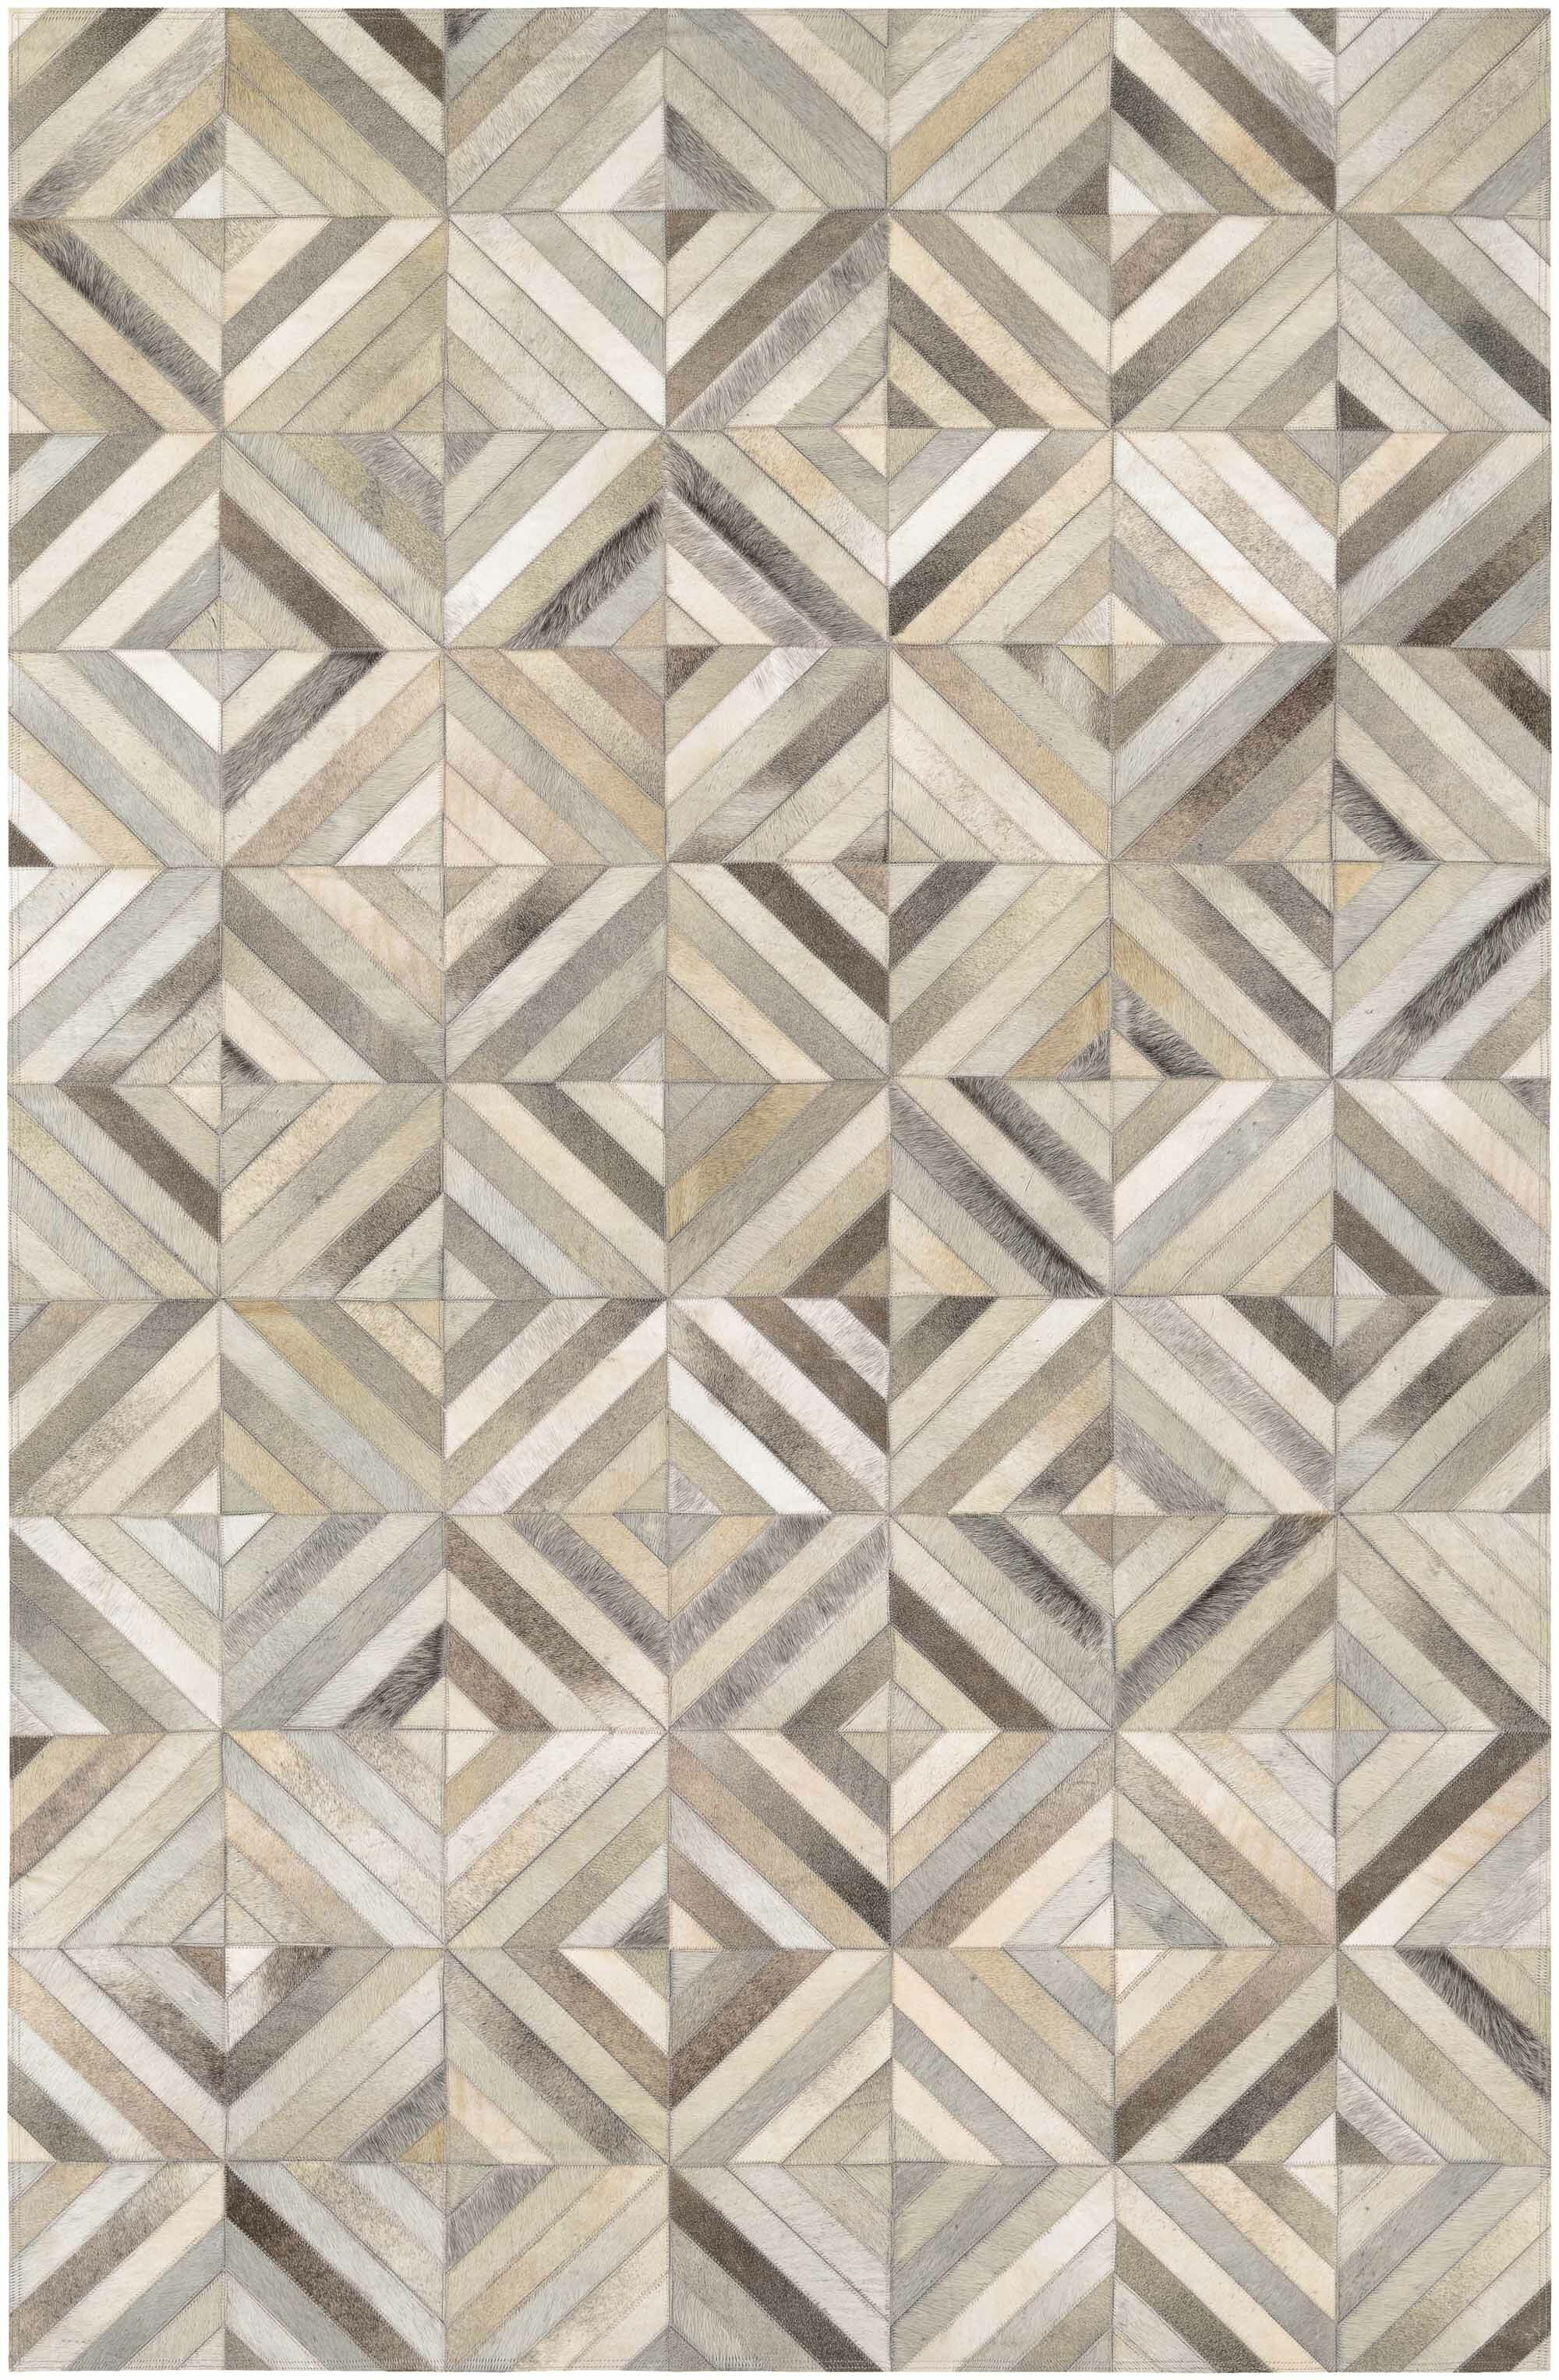 Williston Forge Easthampton Hand Woven Ivory Cowhide Leather Area Rug Reviews Wayfair